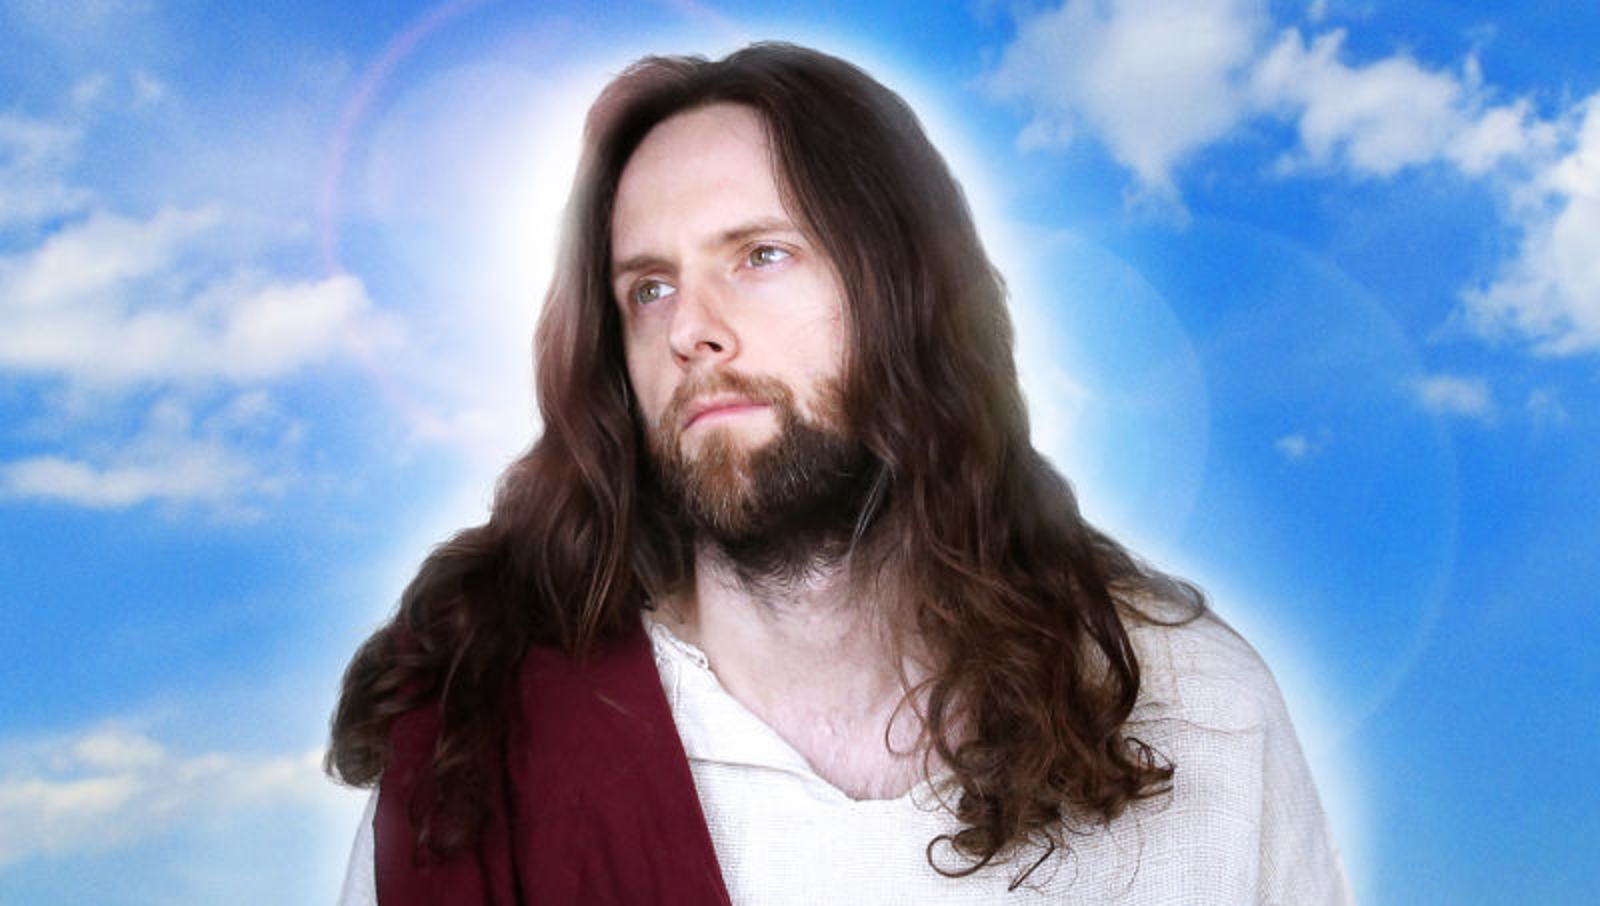 Christ Super Embarrassed About All That Stupid Shit He Said 2,000 Years Ago